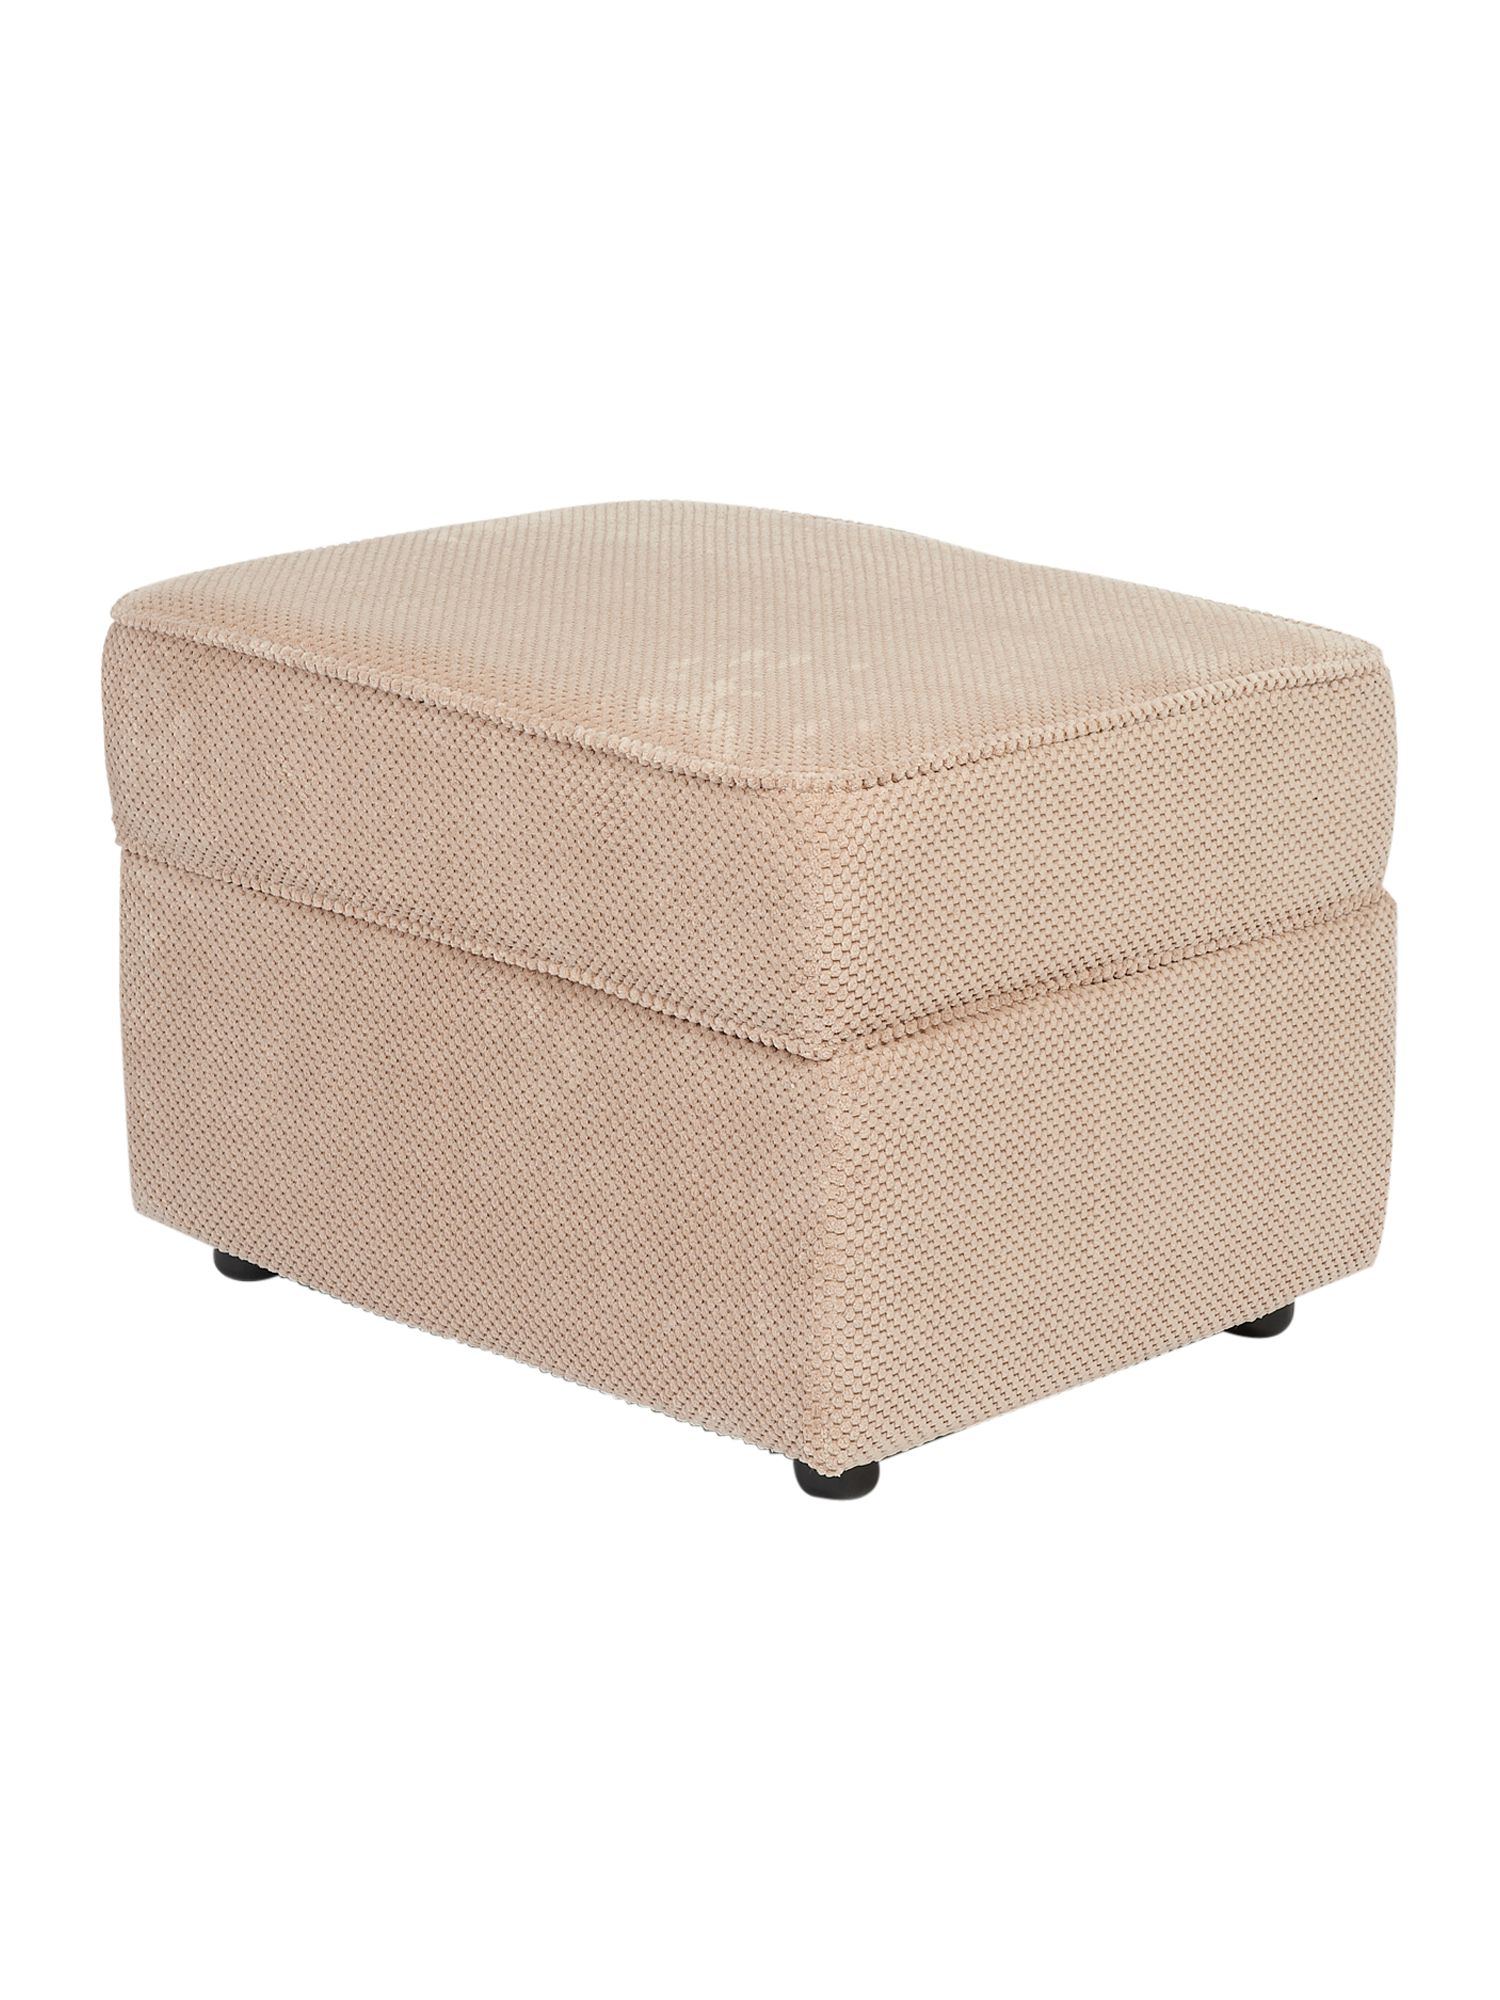 Montana storage footstool